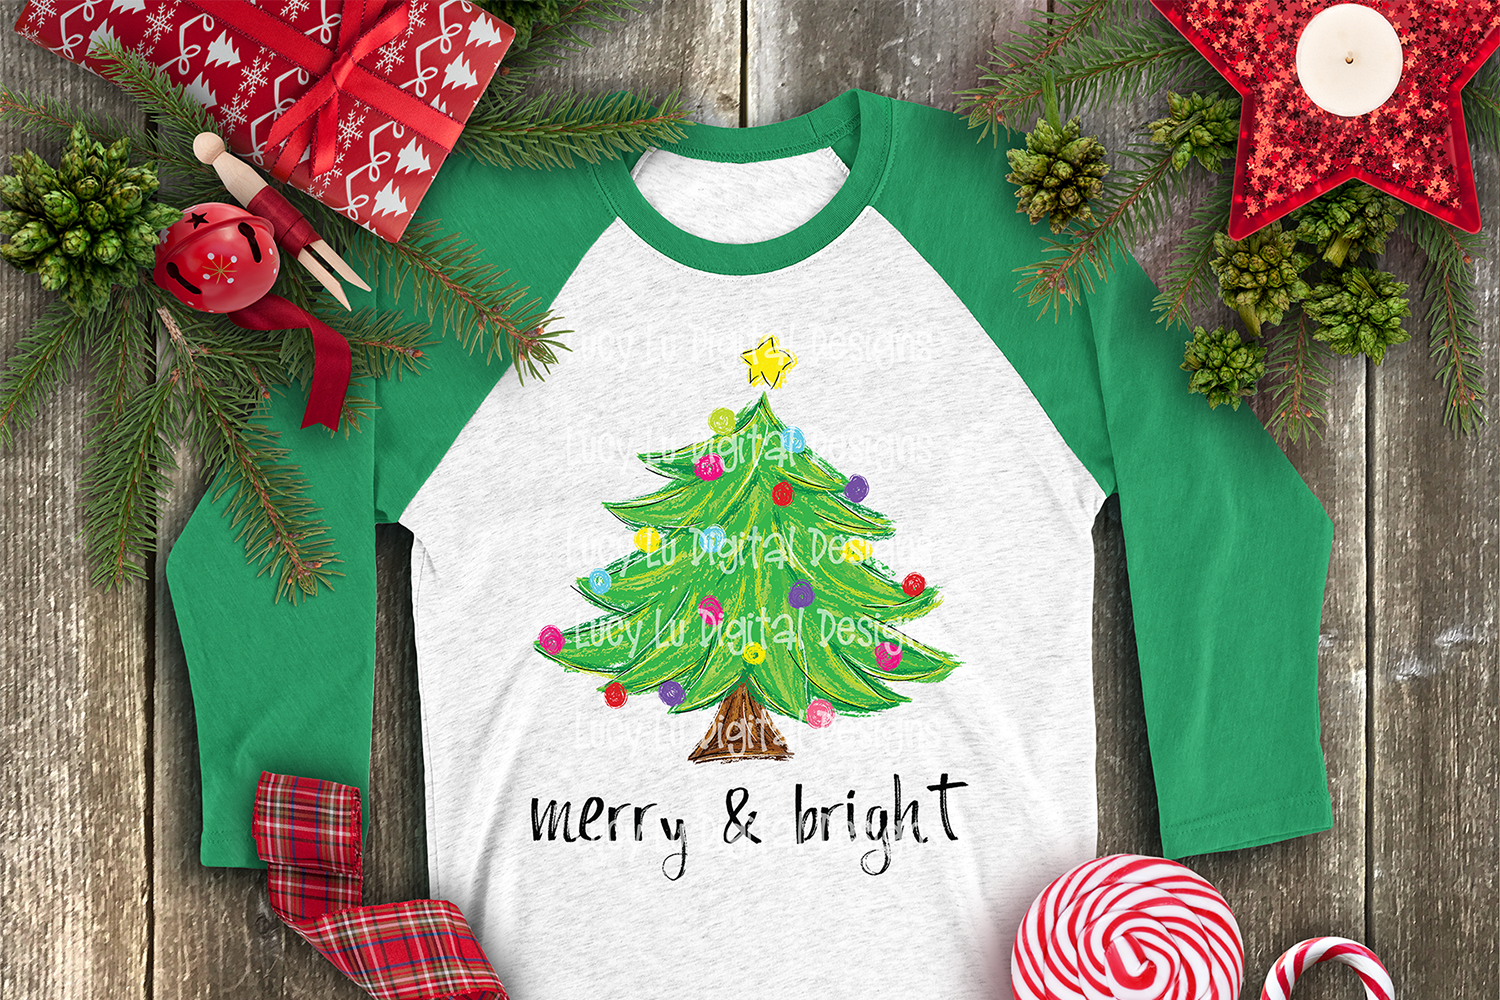 CHRISTMAS - Painted Merry & Bright Tree example image 3